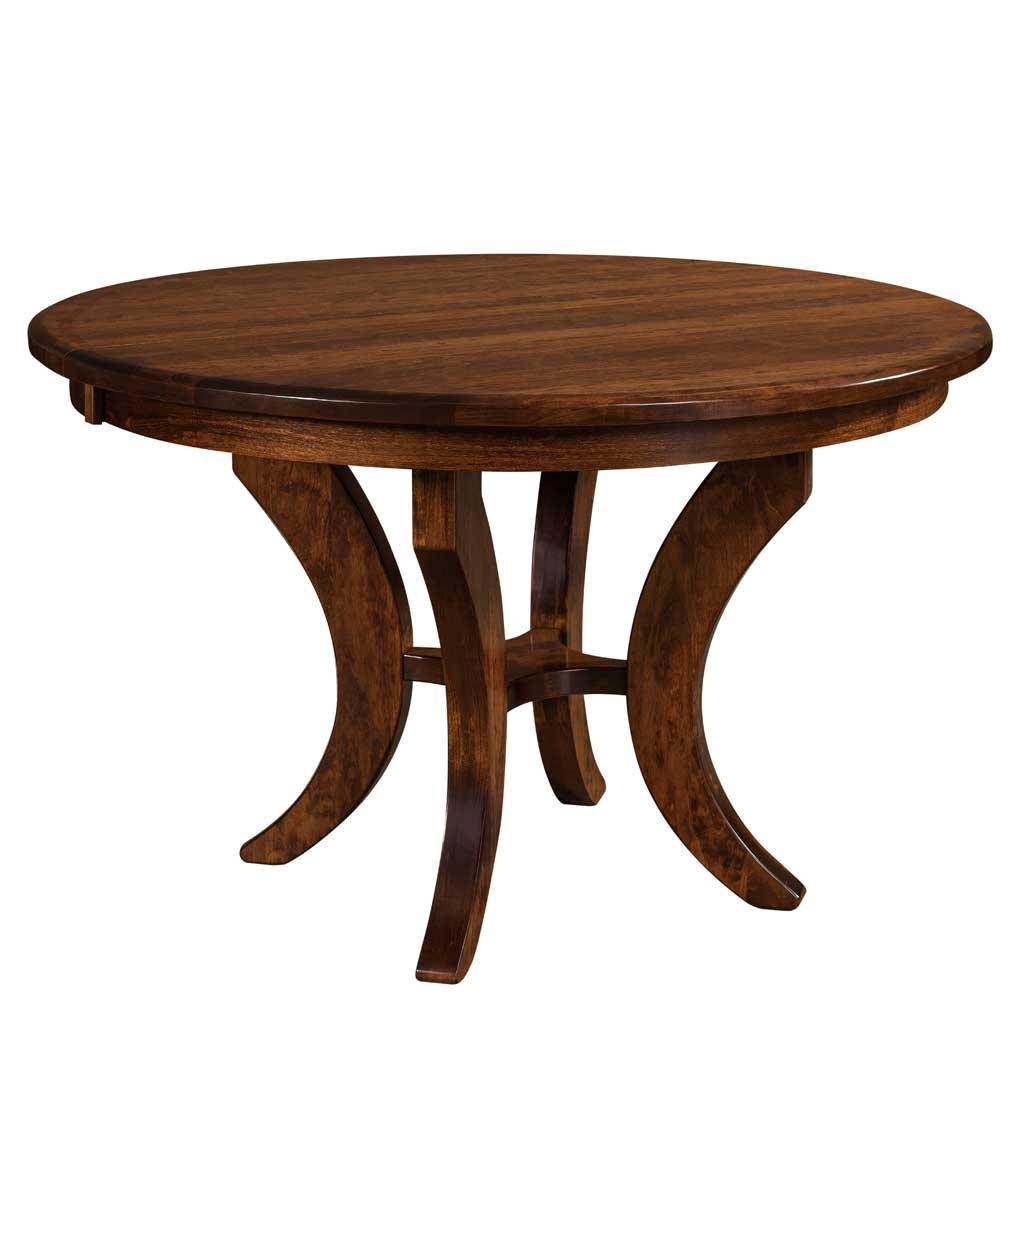 48 Round Dining Table With Leaves Images